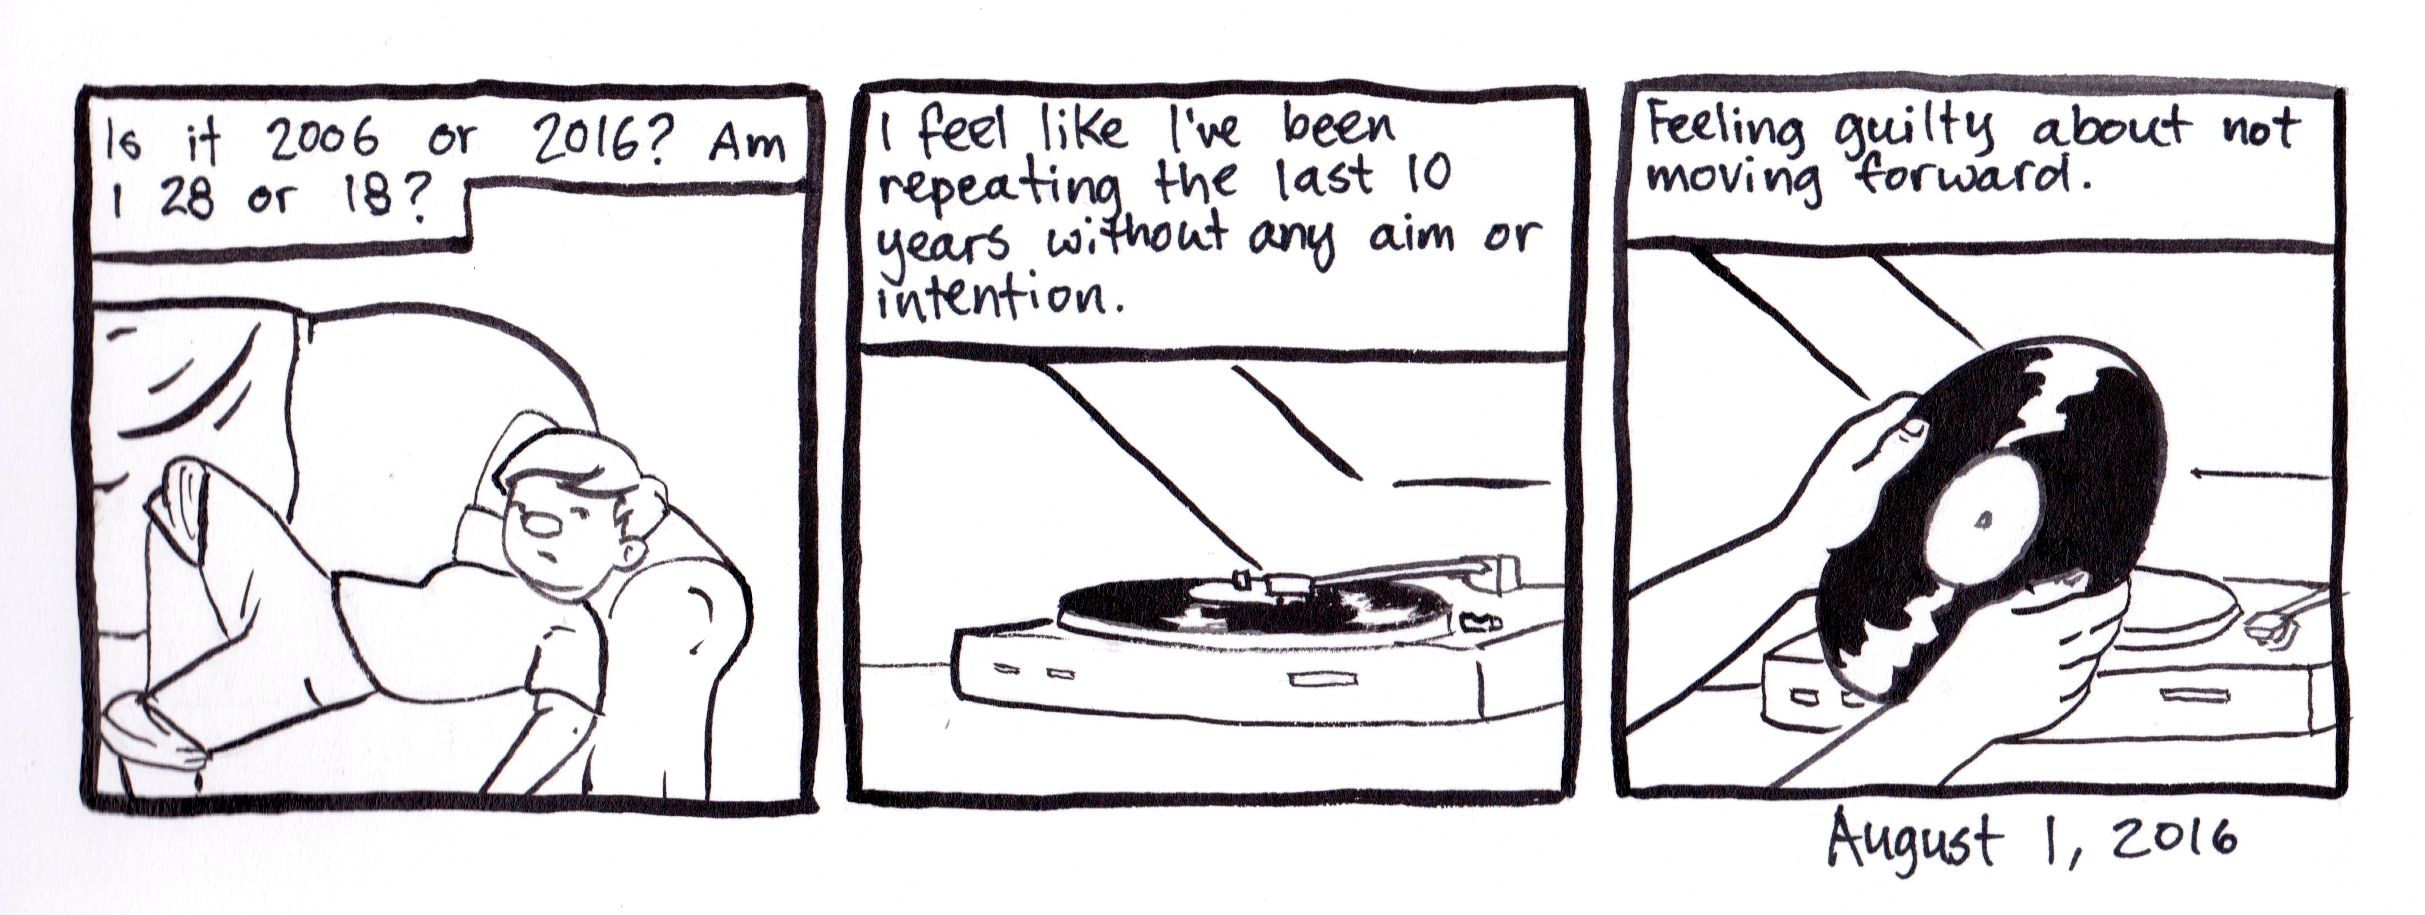 Panel 1 image: Dean lying down on a couch. Panel 1 text: Is it 2006 or 2016? Am I 28 or 18? Panel 2 image: A record playing on a turntable. Panel 2 text: I feel like I've been repeating the last 10 years without any aim or intention. Panel 3 image: Dean's hands taking the record off the turntable. Panel 3 text: Feeling guilty about not moving forward.